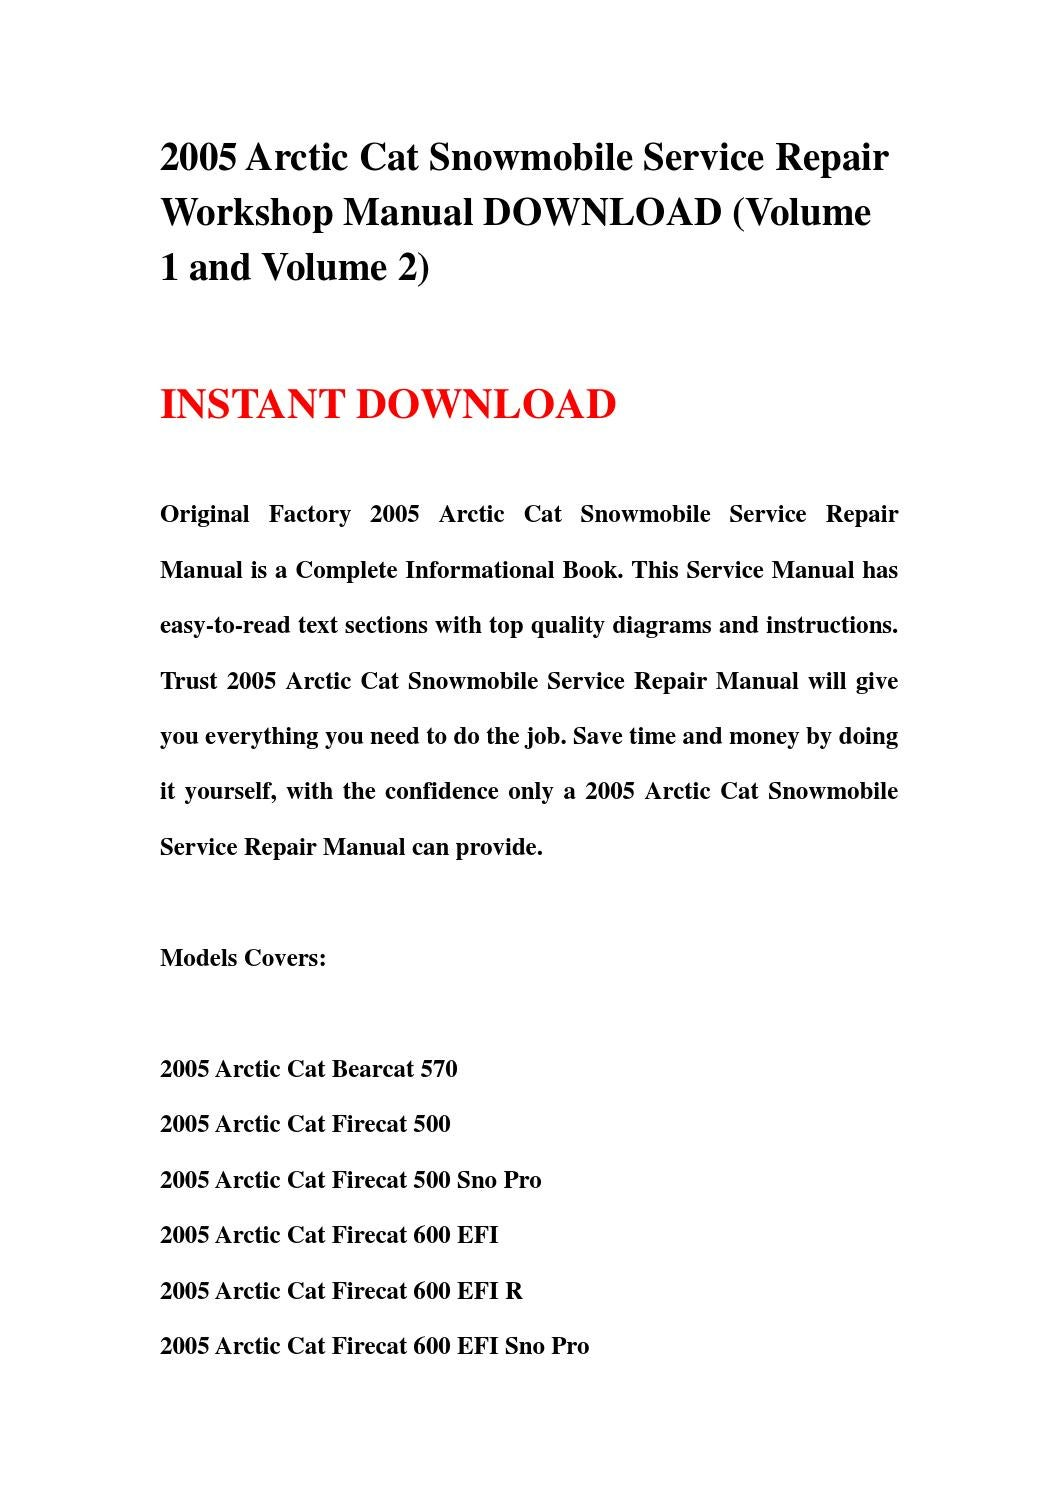 hight resolution of 2005 arctic cat snowmobile service repair workshop manual download volume 1 and volume 2